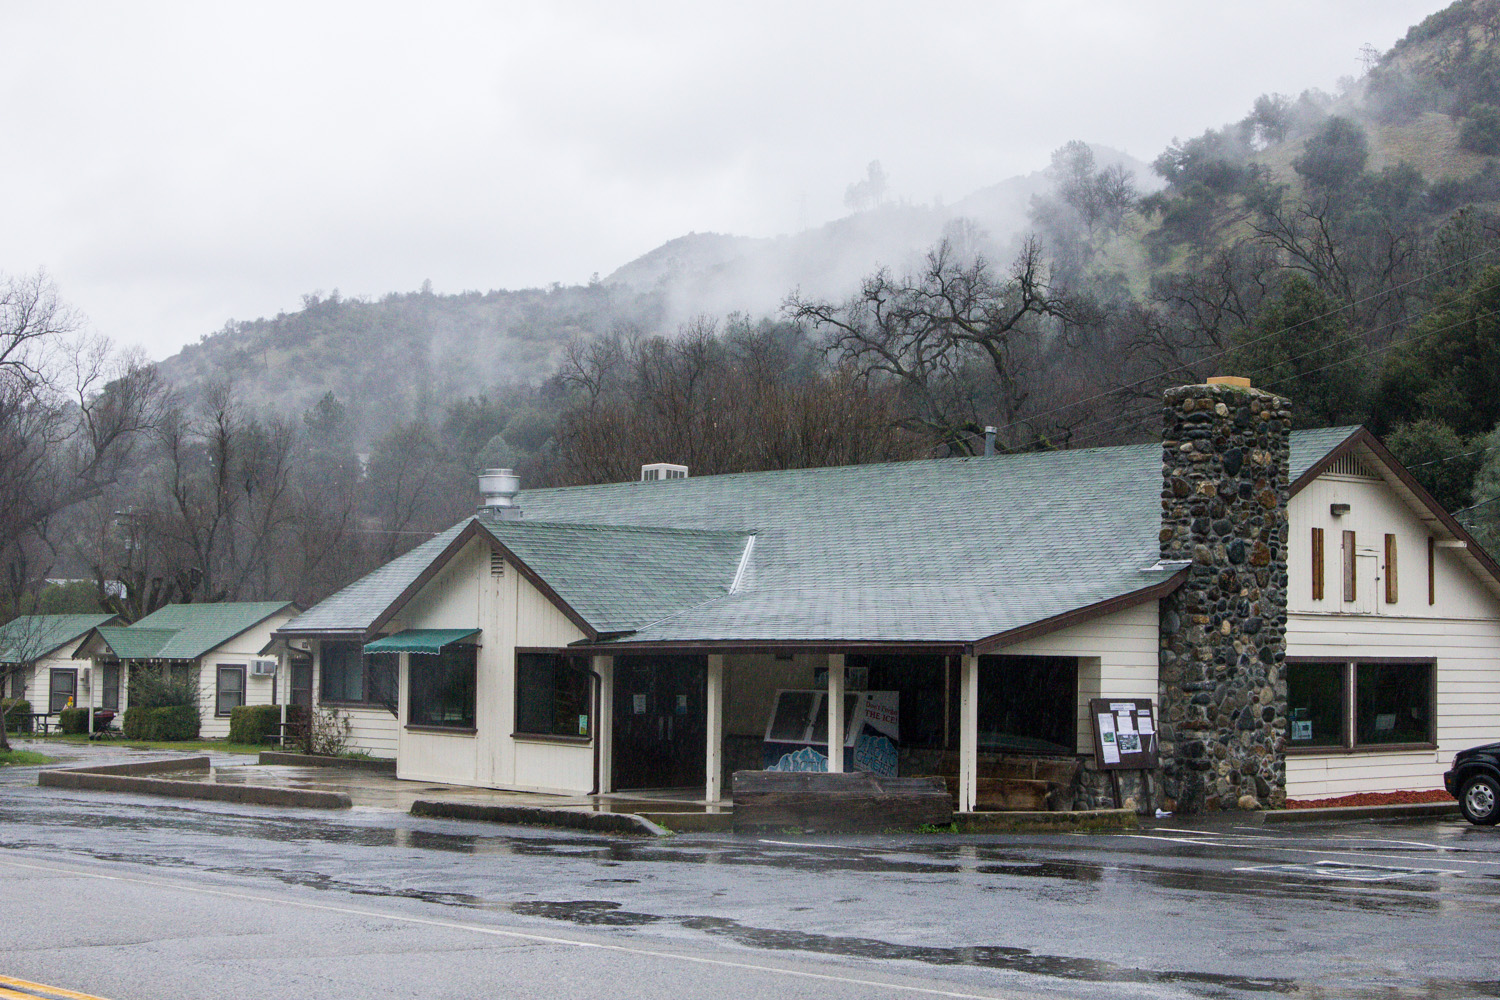 Store on Highway 140 in the fog and rain